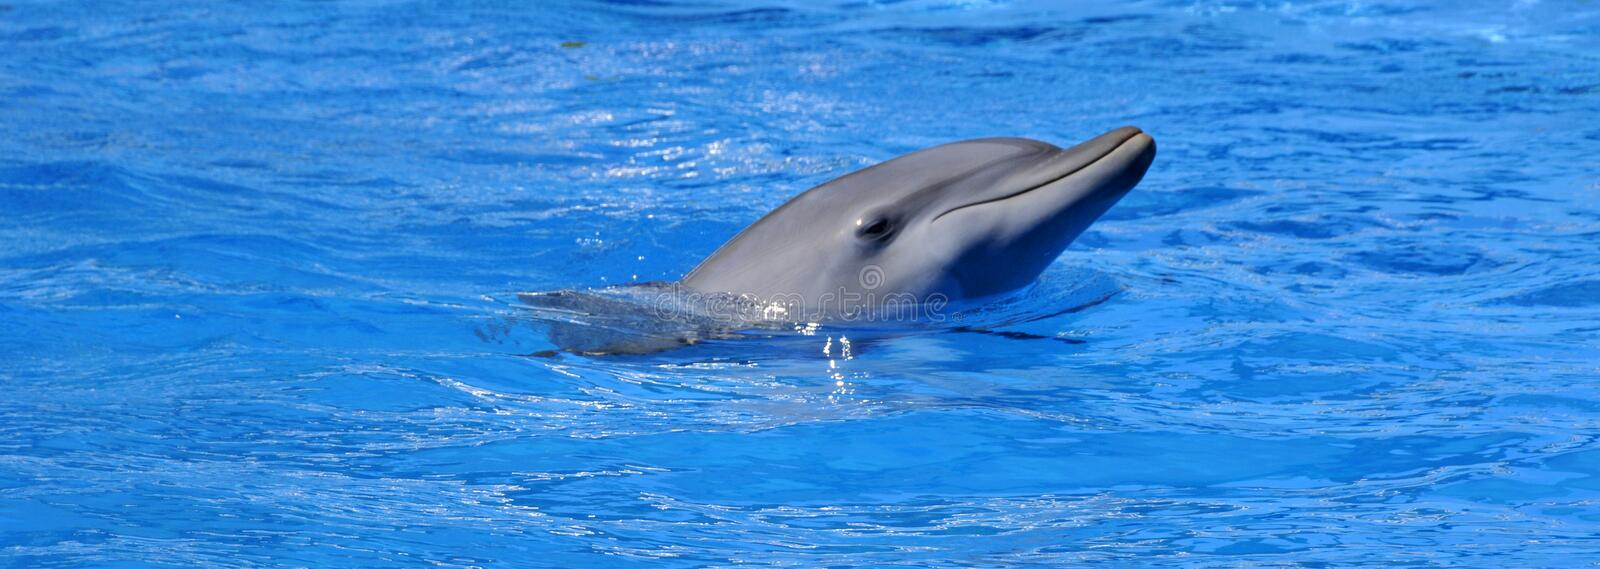 Dolphins are a widely distributed and diverse group of aquatic mammals. They are an informal grouping within the order Cetacea, excluding whales and porpoises royalty free stock photo